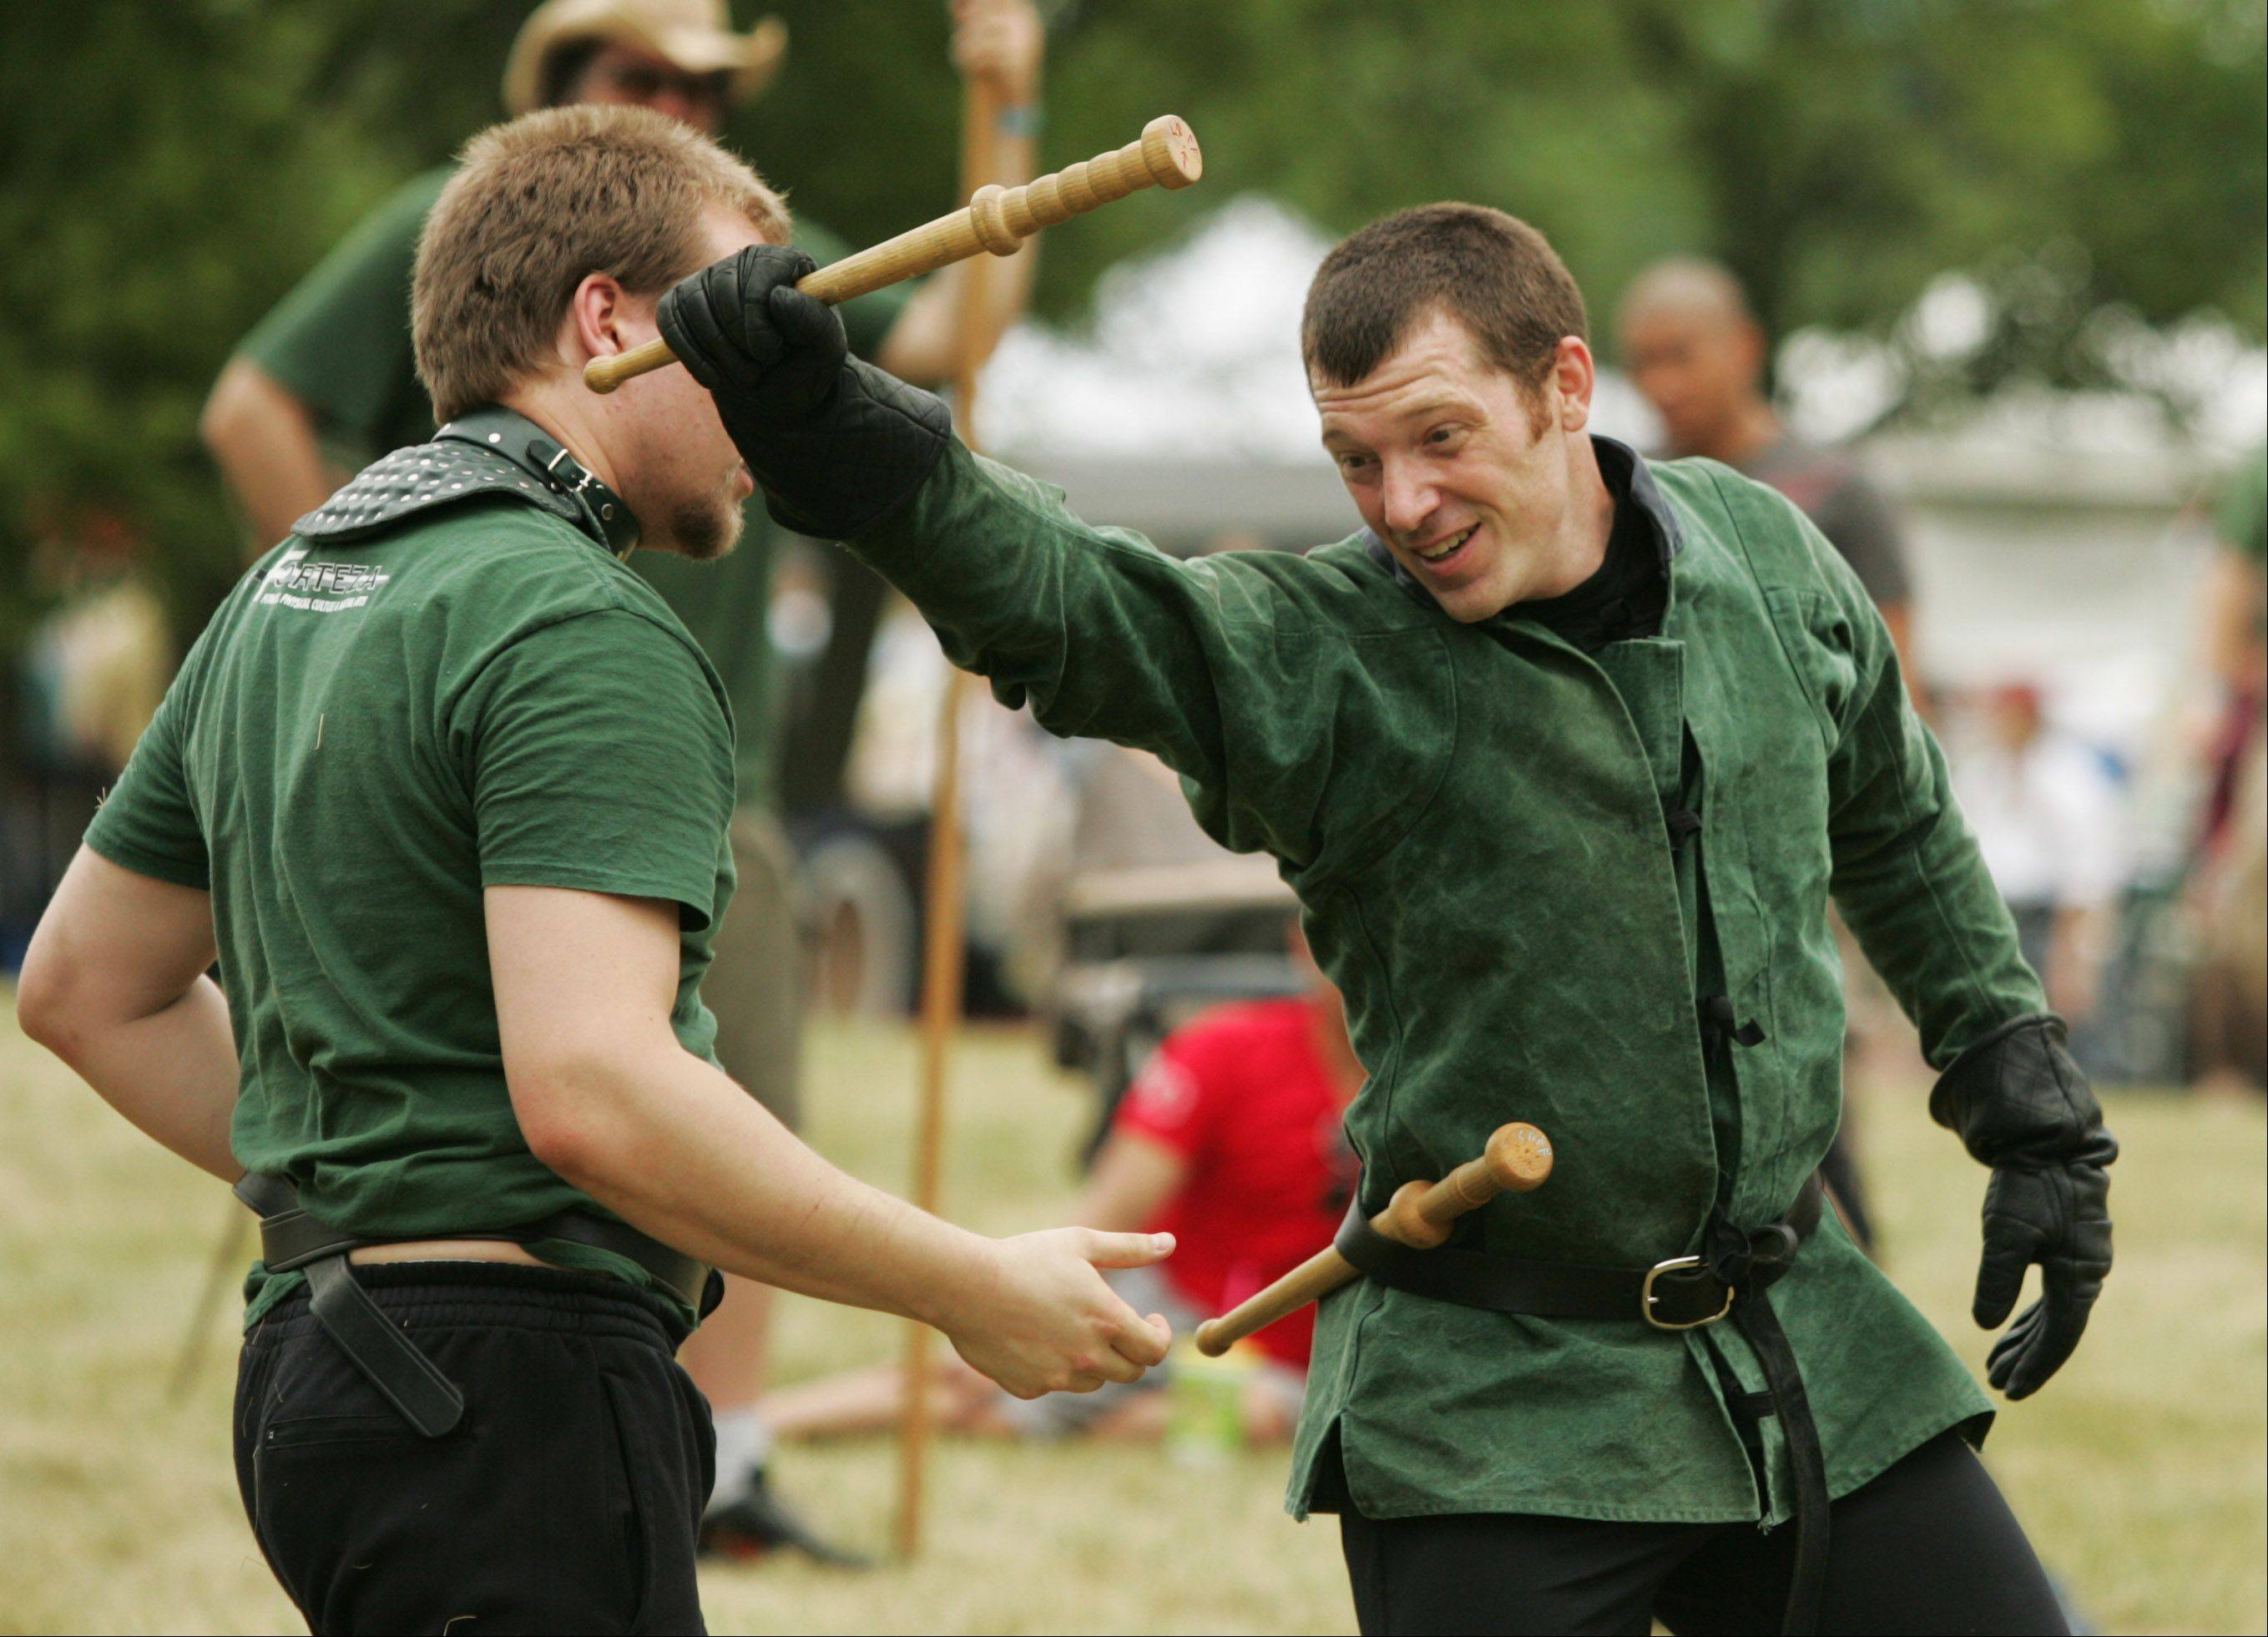 Nathan Wisniewski, left, of Arlington Heights and Jesse Kulla of Chicago perform during a previous year's Scottish Festival and Highland Games in Itasca.